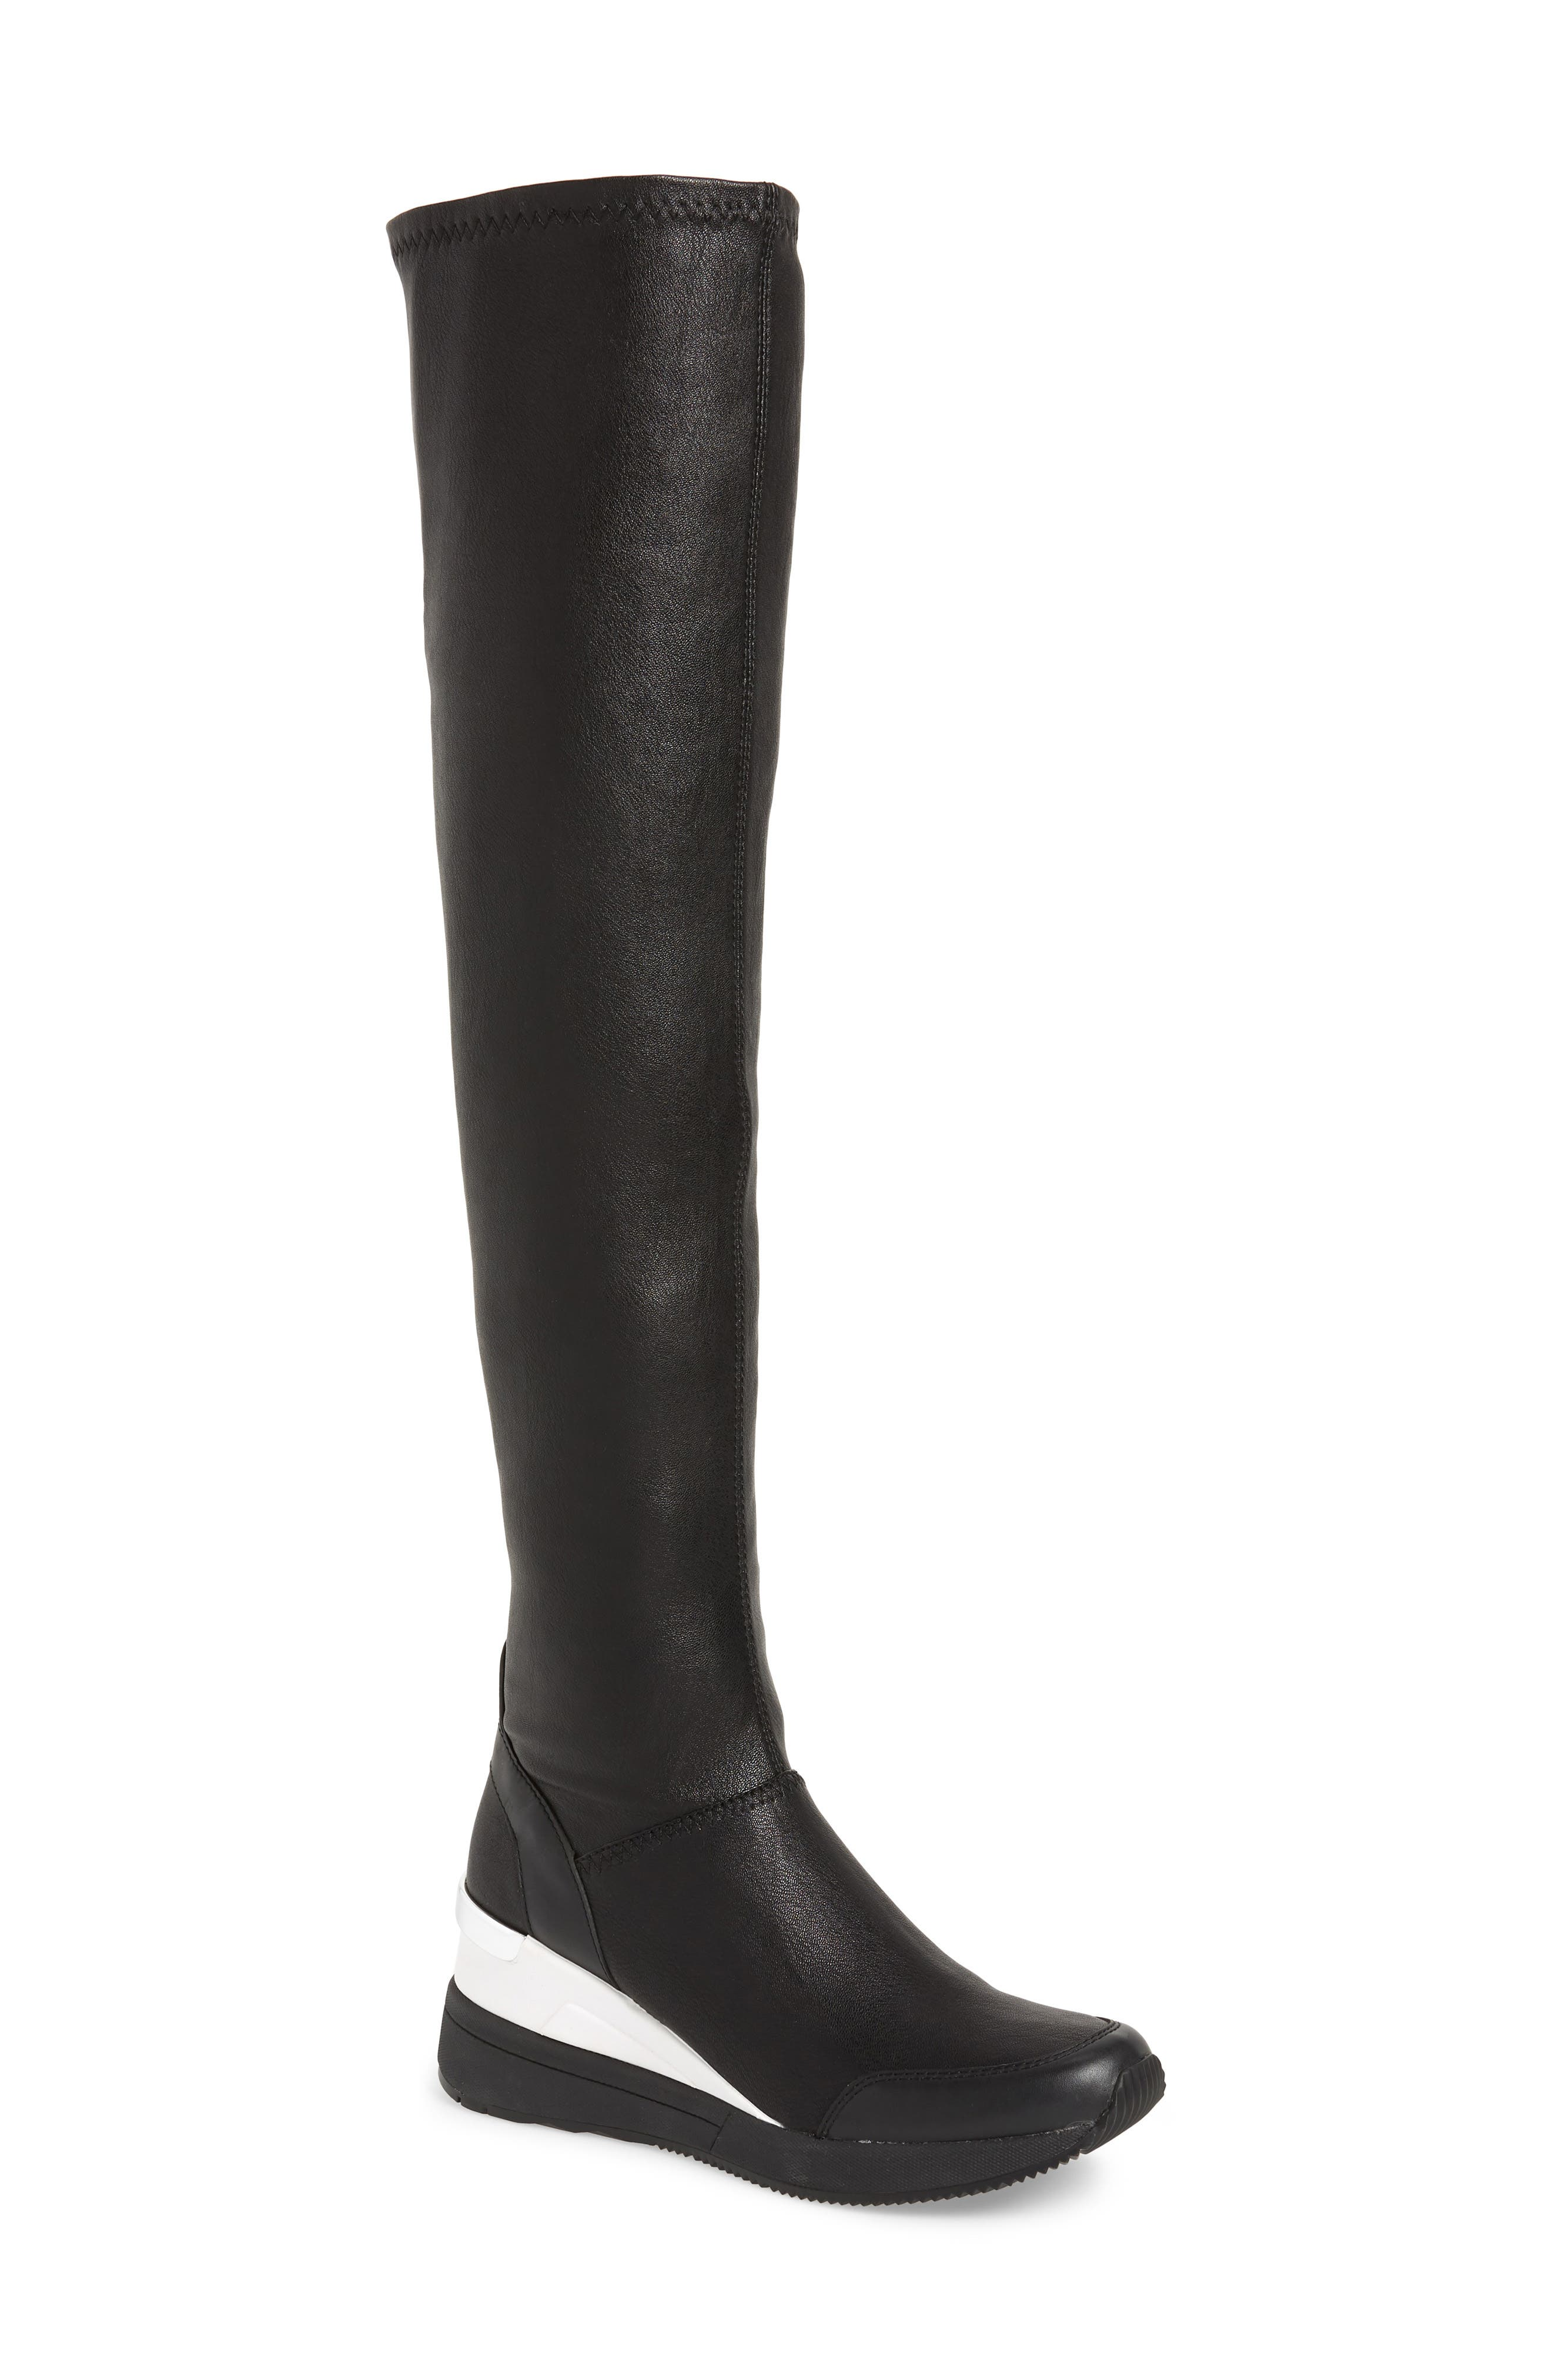 Tipton Wedge Over the Knee Rain Boot,                         Main,                         color, BLACK FAUX LEATHER